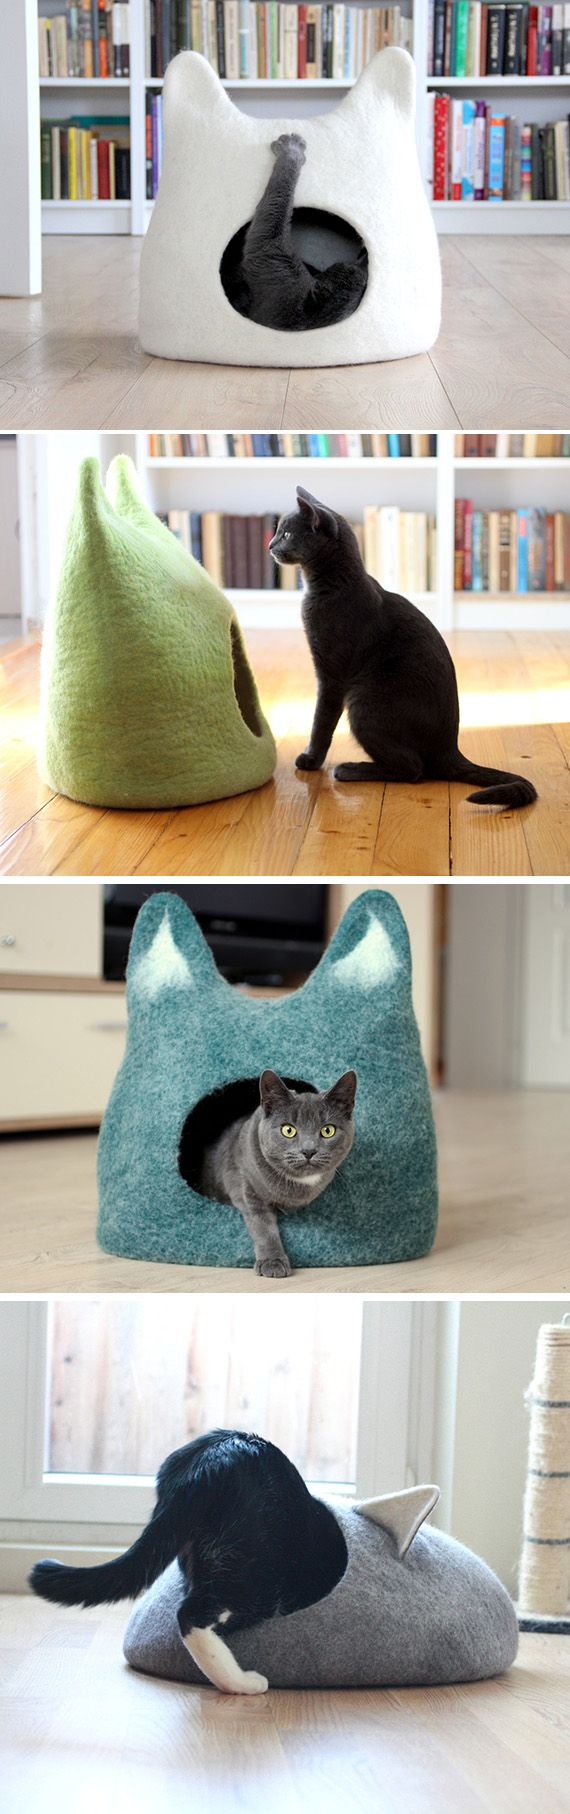 Because kitties love to be comfy too, treat your cat to a bed that so them.